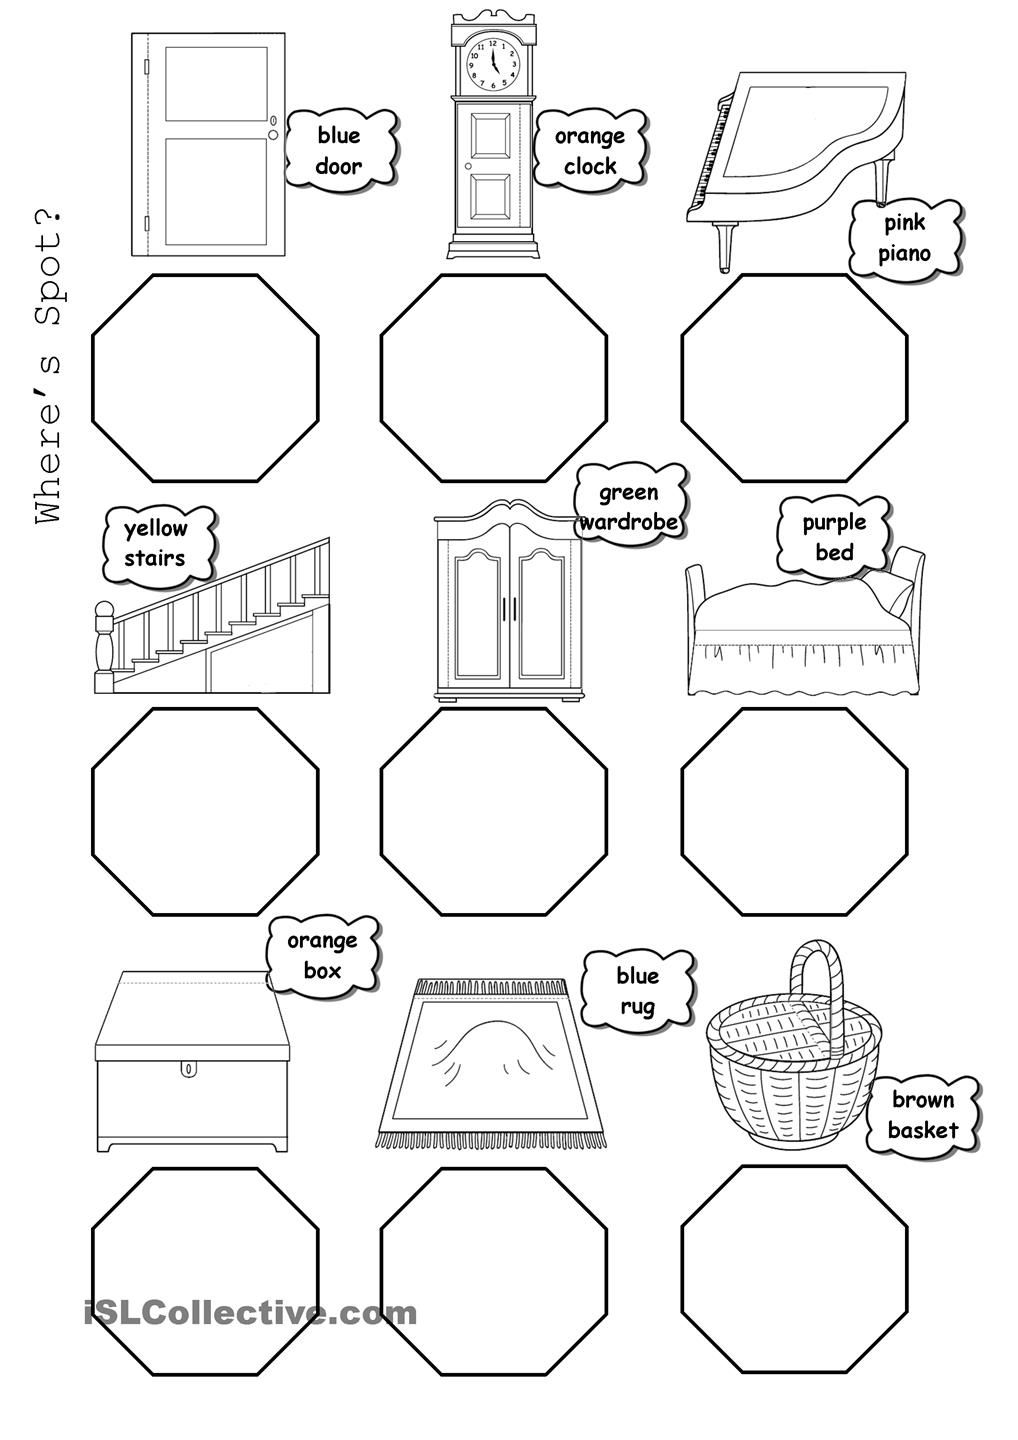 wheres spot coloring pages | Wheres Spot? | Spot books, Preposition activities ...